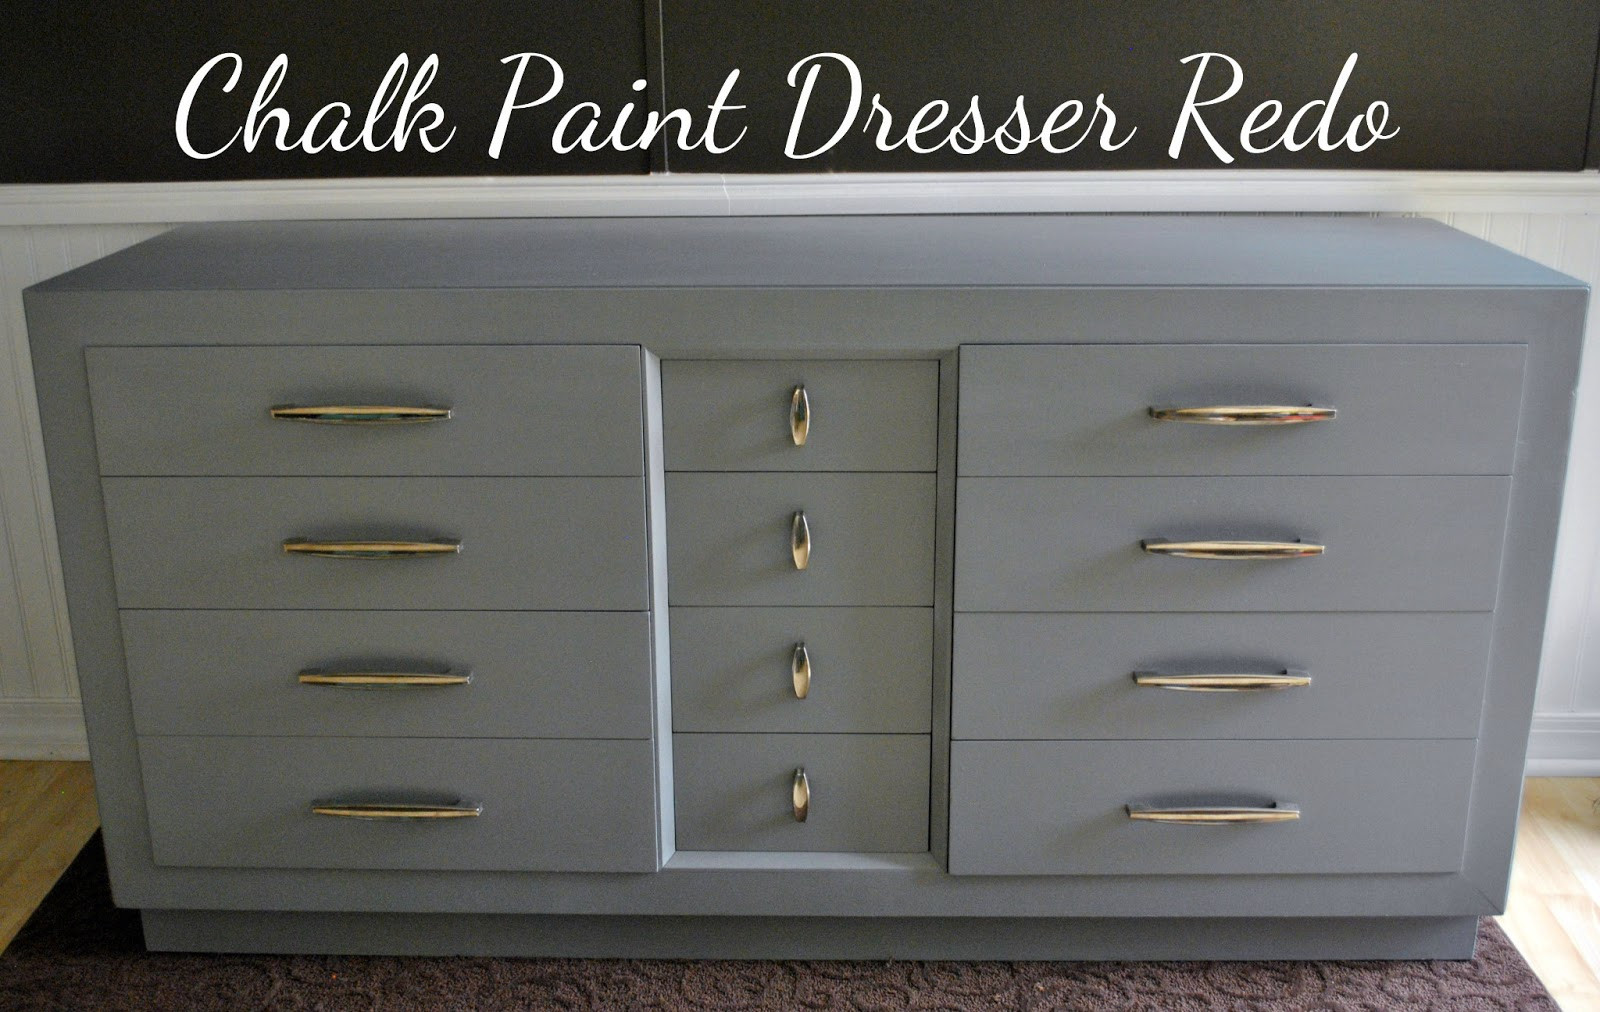 Best ideas about Chalk Paint DIY . Save or Pin Life With 4 Boys DIY Chalk Paint Dresser Redo Now.